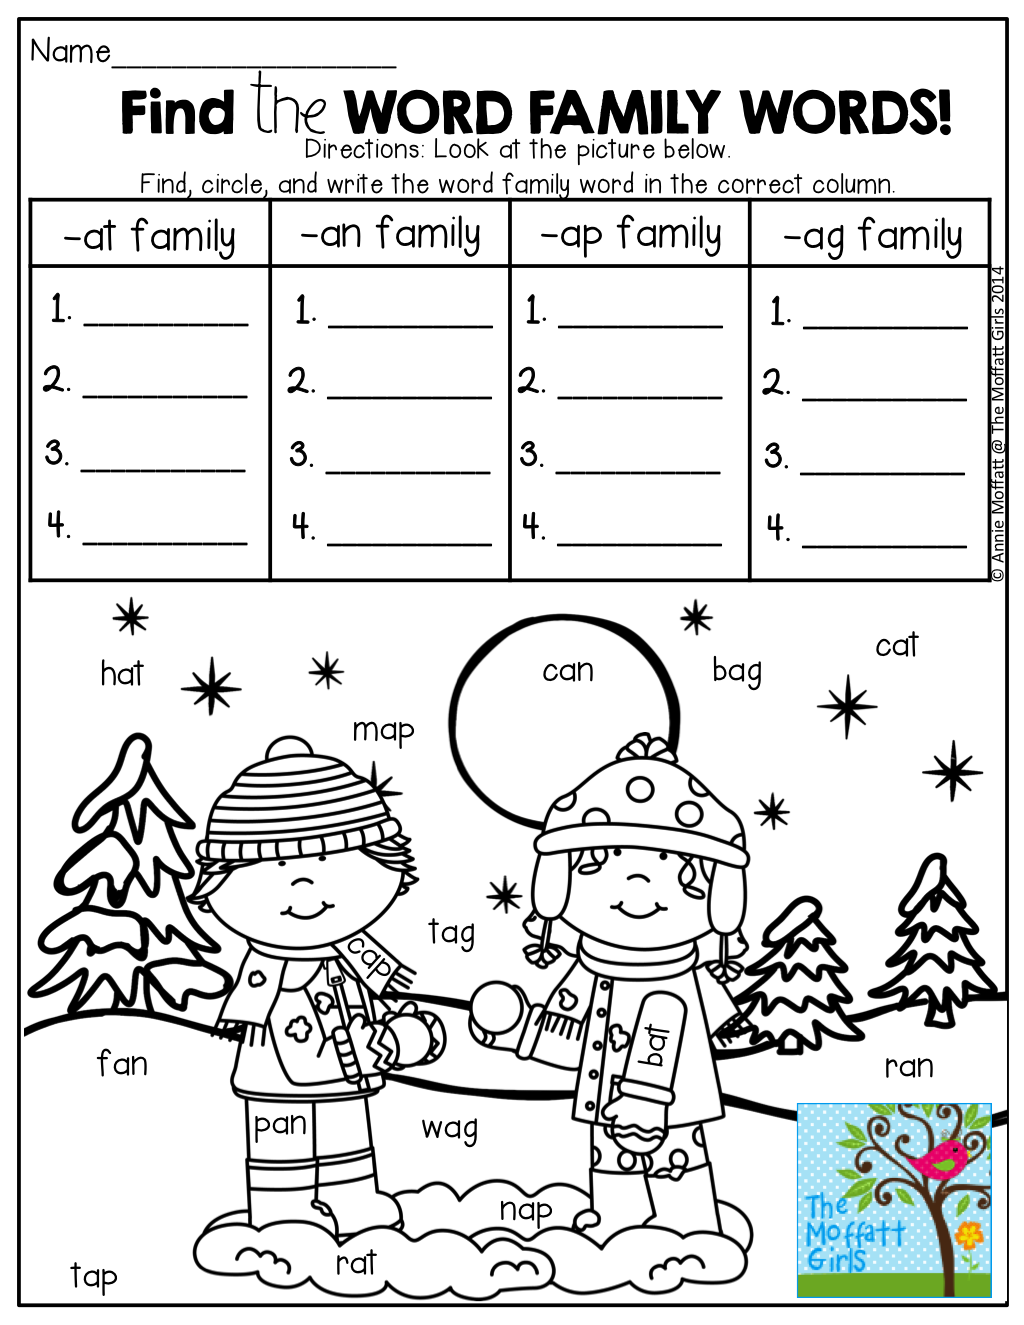 Find The Word Family Words In The Picture Write Them Under The Correct Column Fun Fun Tons